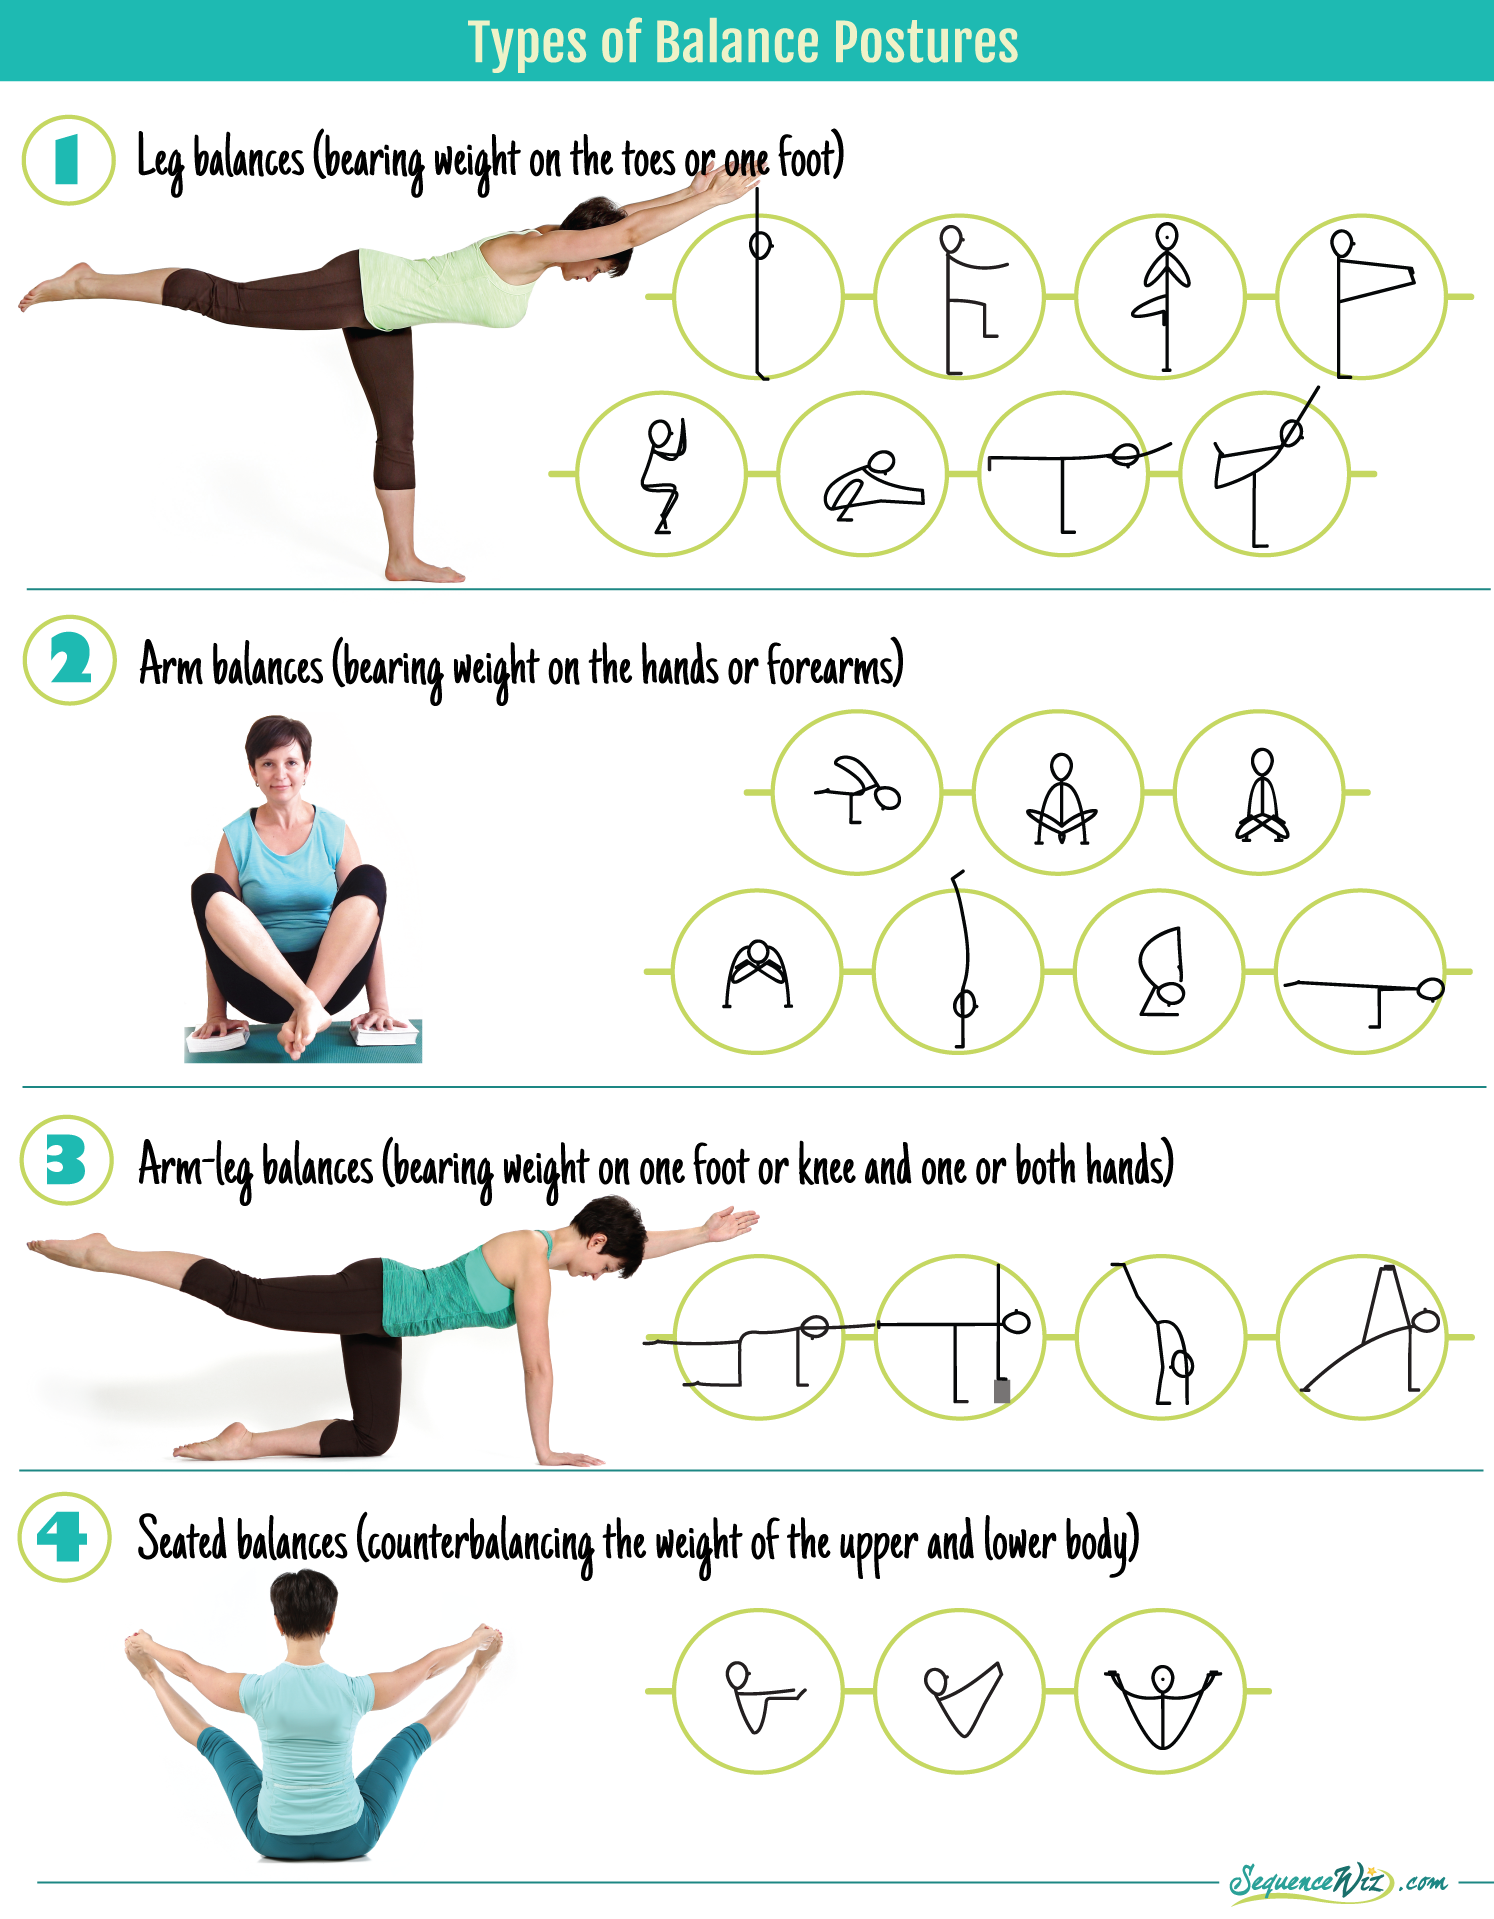 how to train your balance  4 awesome ways to build strength and balance through regular yoga